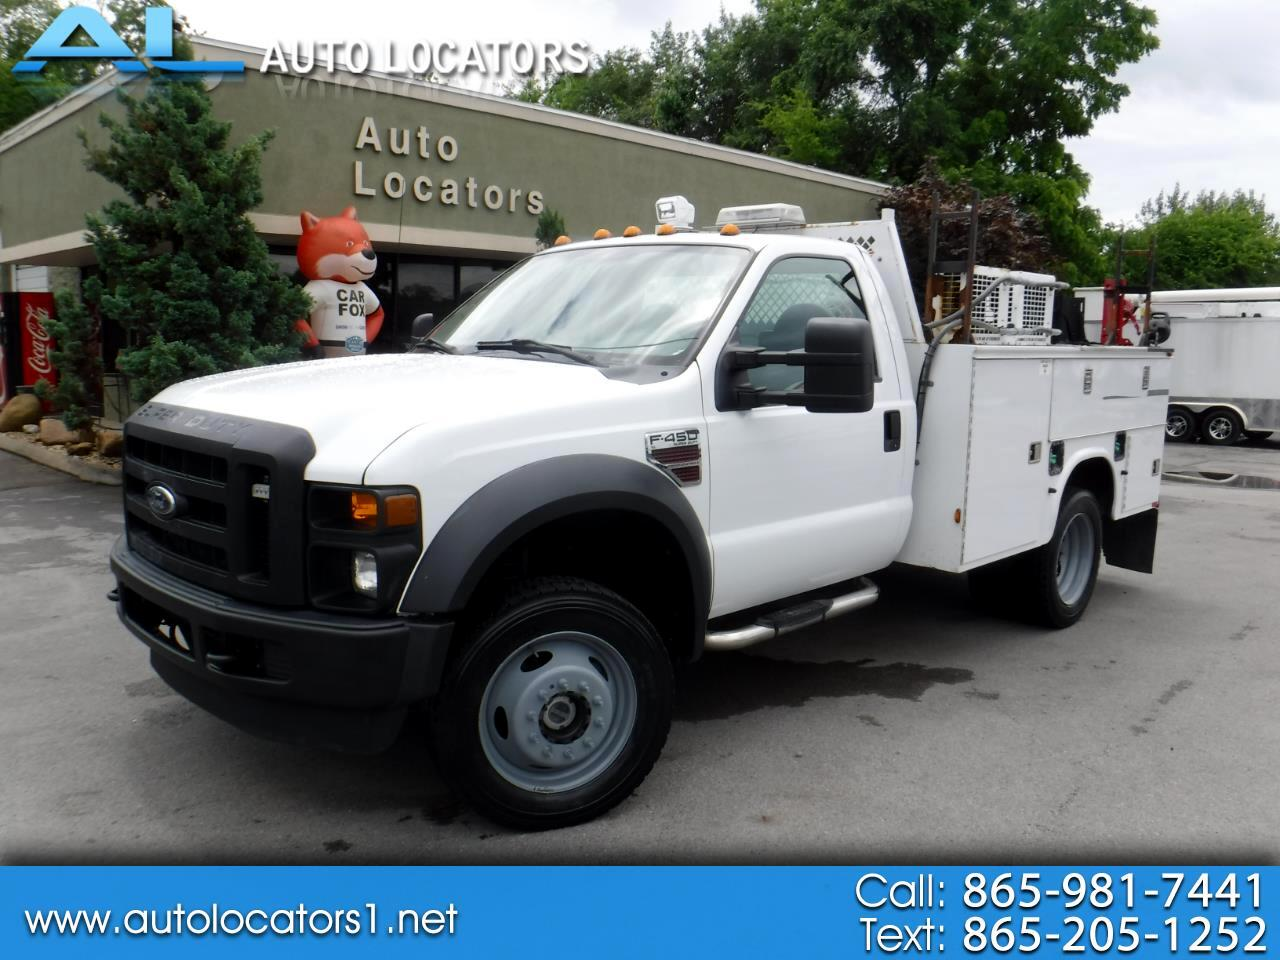 2010 Ford Super Duty F-450 DRW REG CAB 4X4 XL